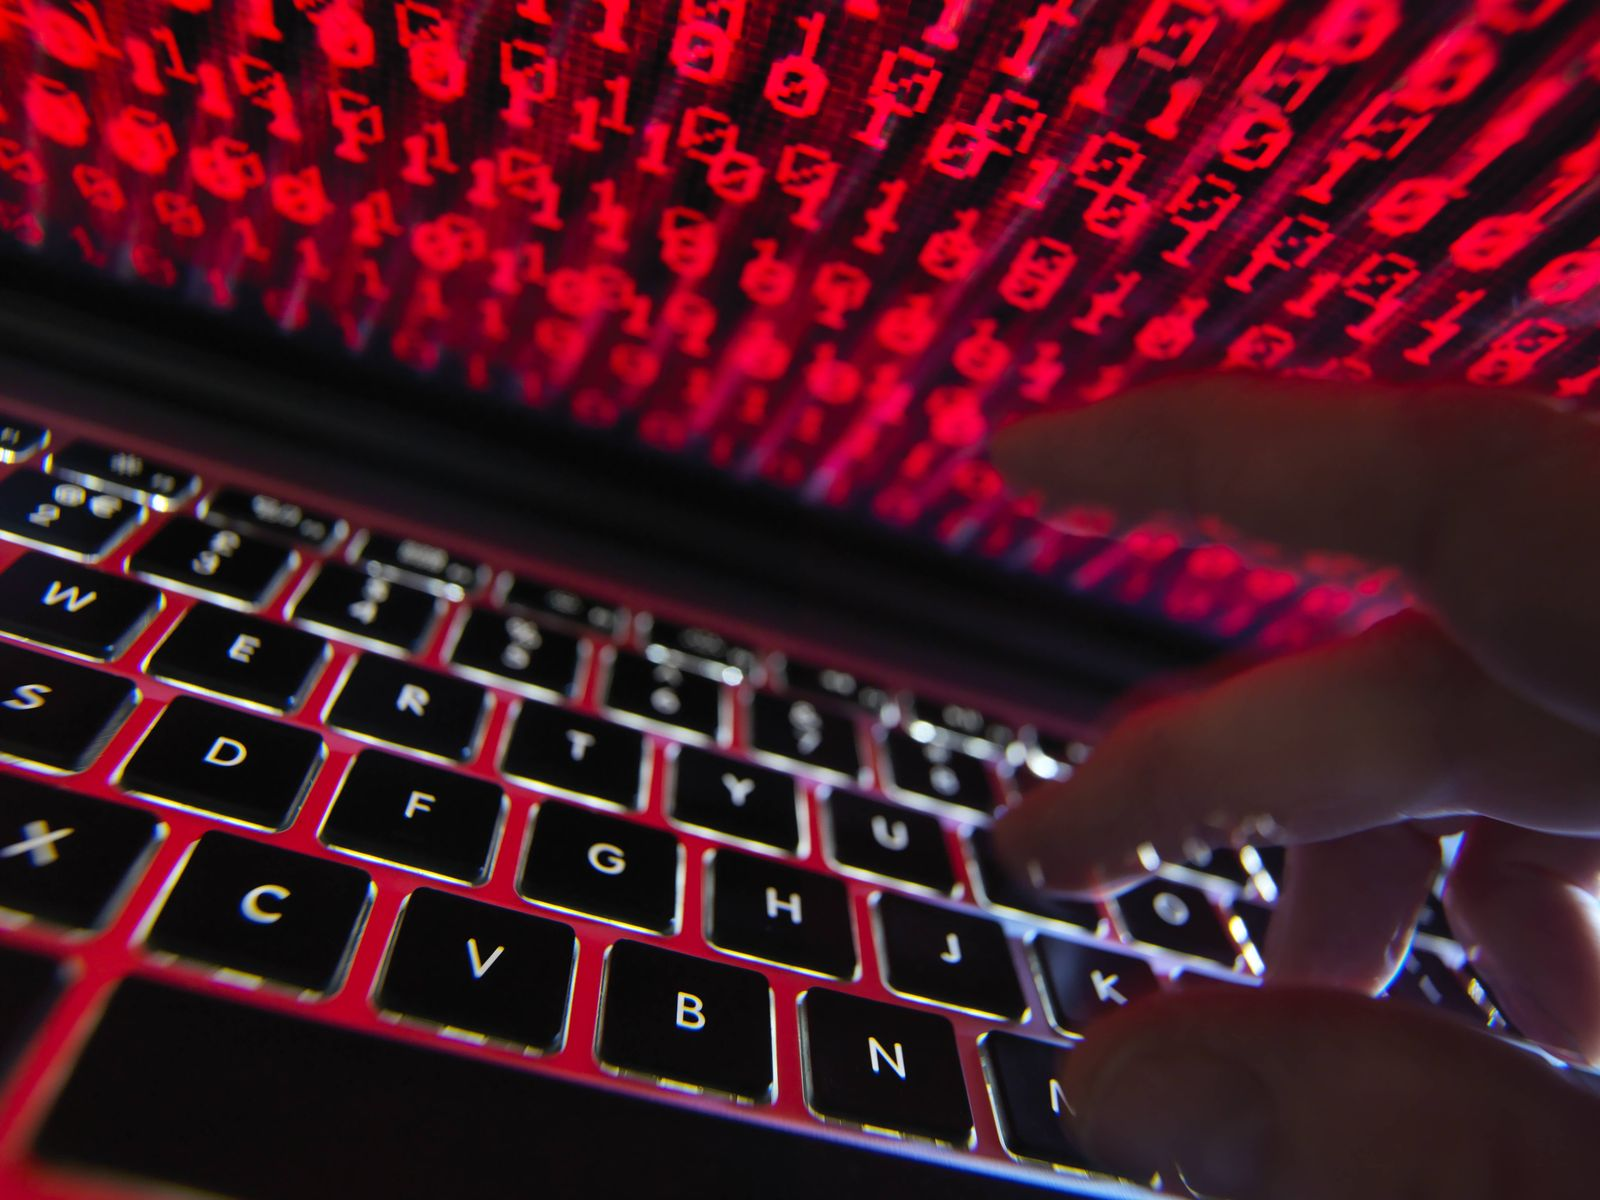 Hacker coding a computer virus infecting a laptop model released Symbolfoto property released PUBLI